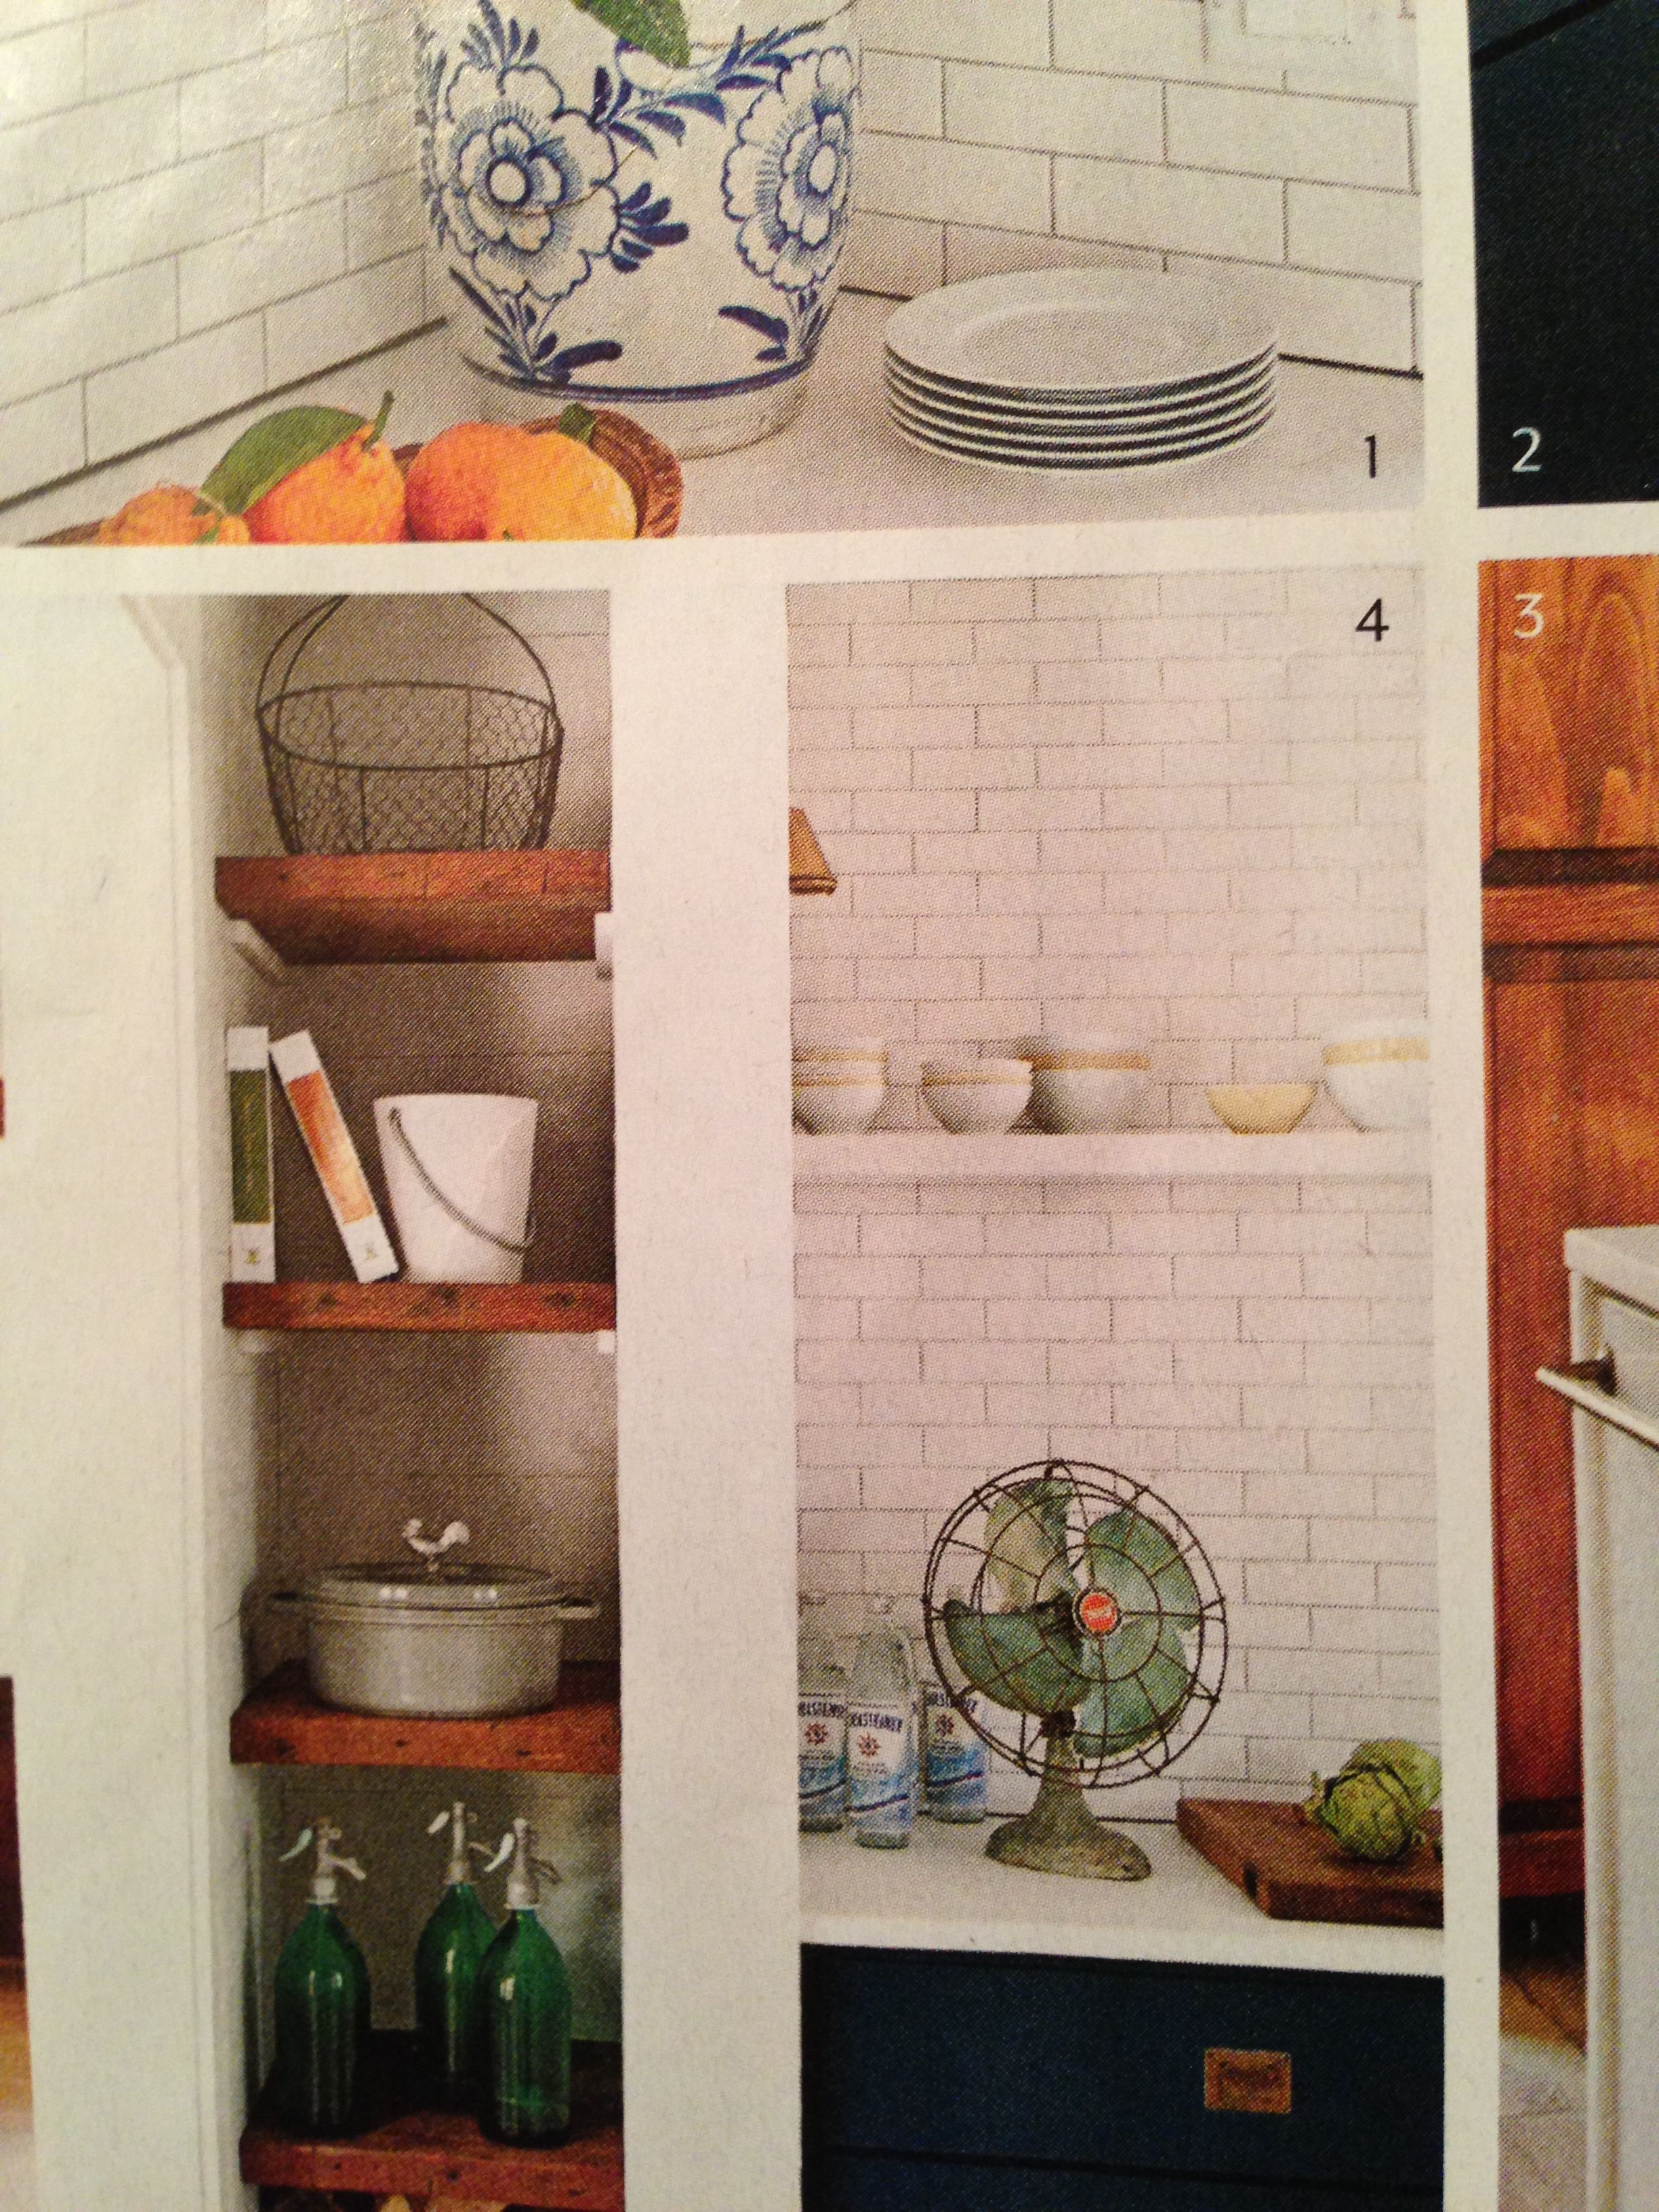 White subway tiles and reclaimed wood shelves darien tudor white subway tiles and reclaimed wood shelves dailygadgetfo Images